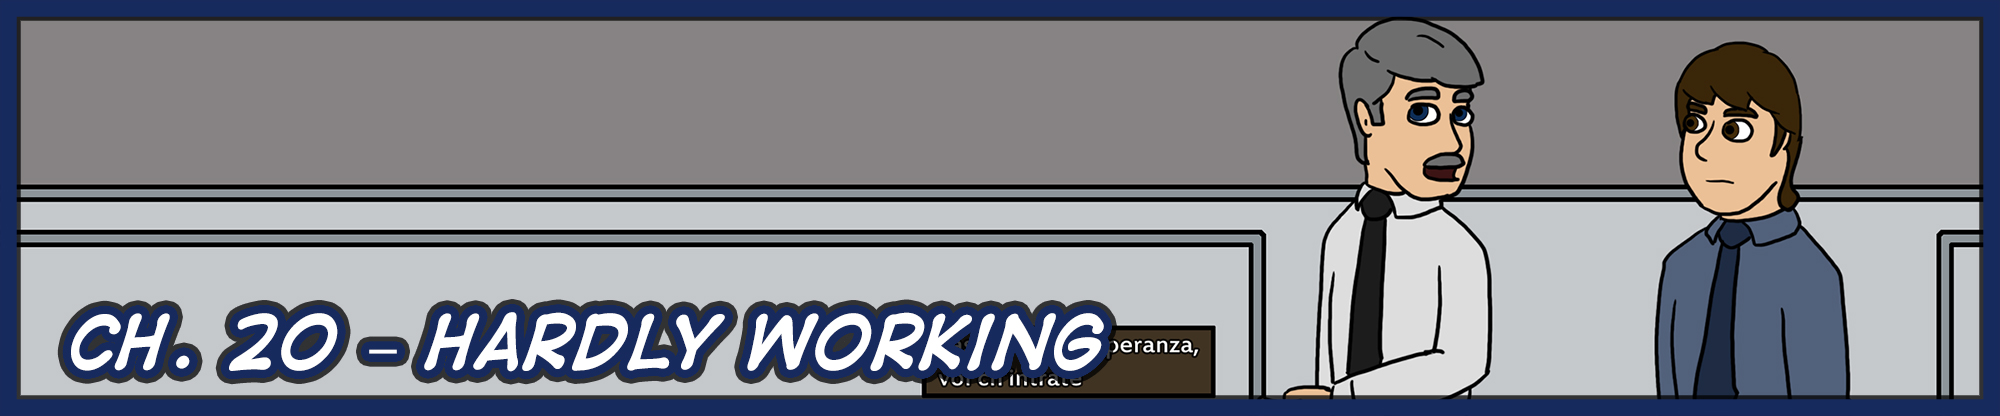 Ch. 20 – Hardly Working